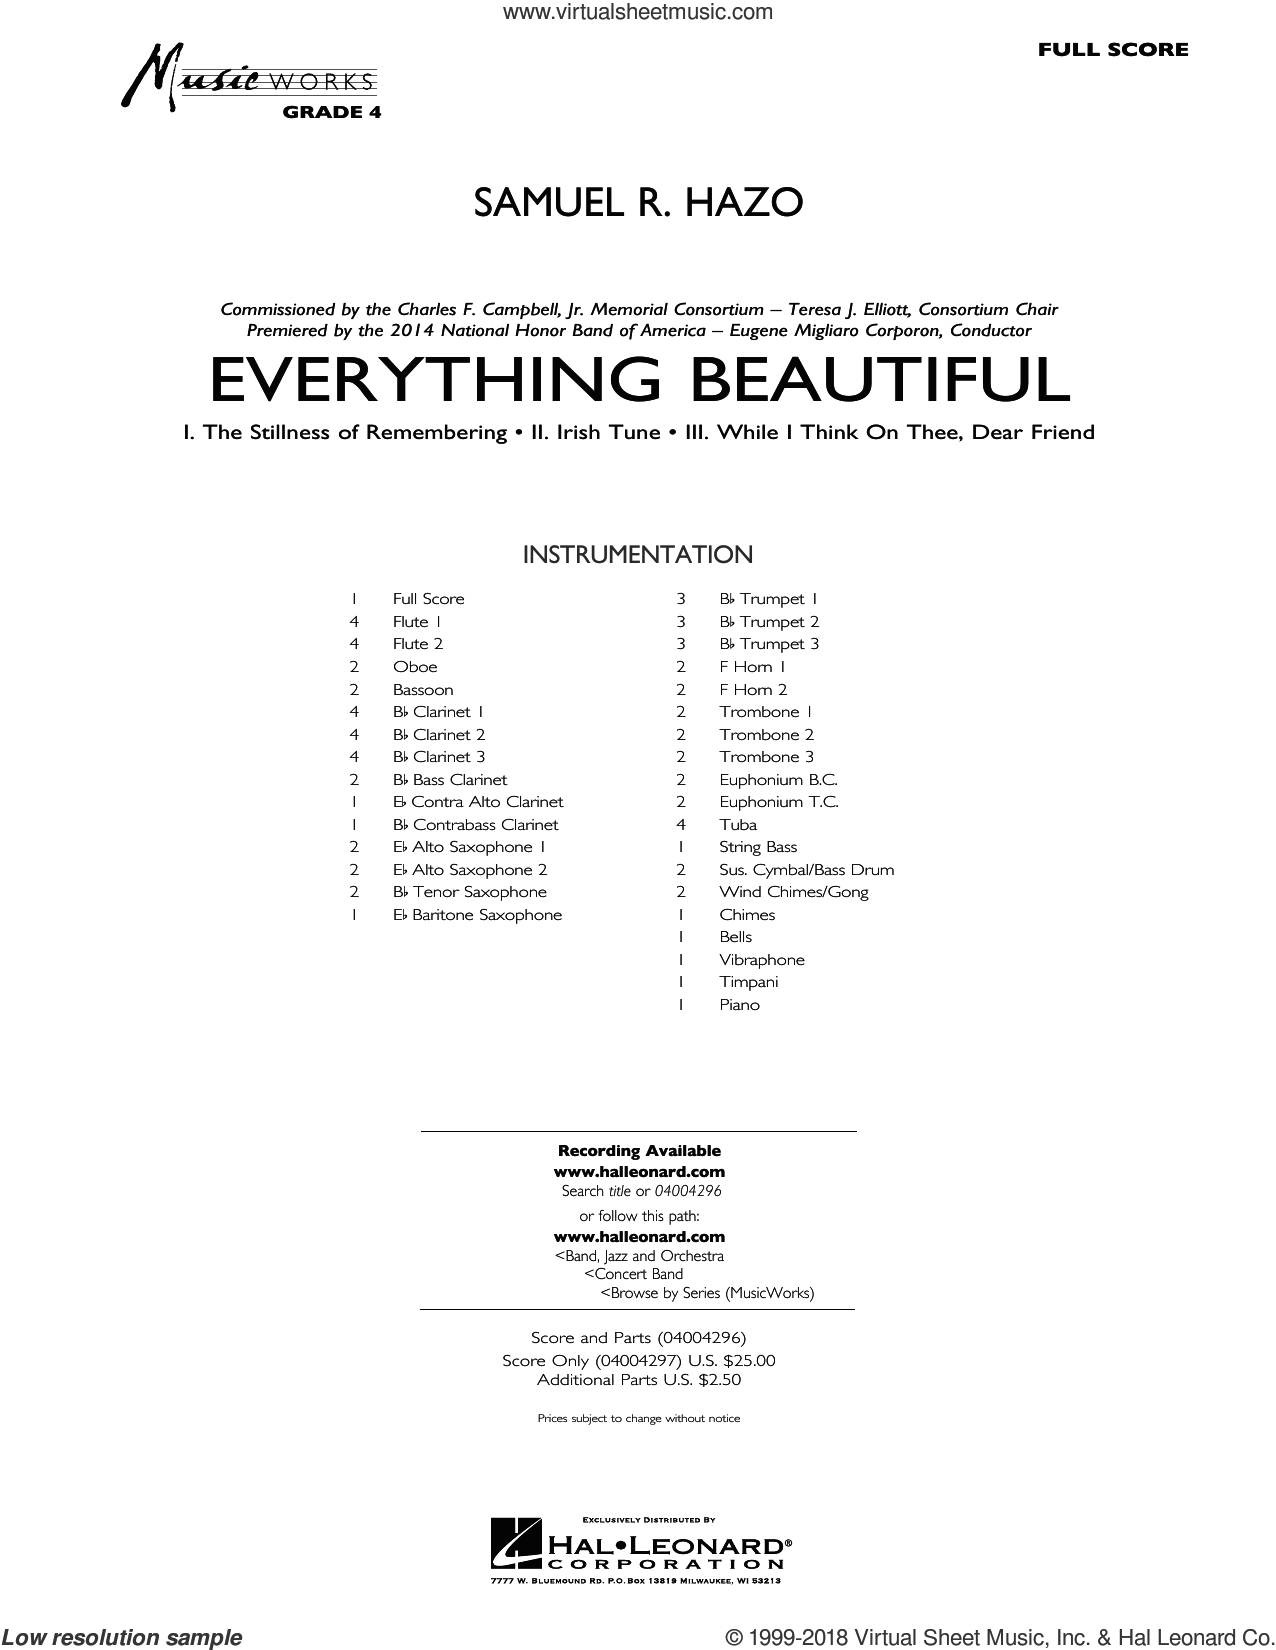 Everything Beautiful (COMPLETE) sheet music for concert band by Samuel R. Hazo, intermediate skill level